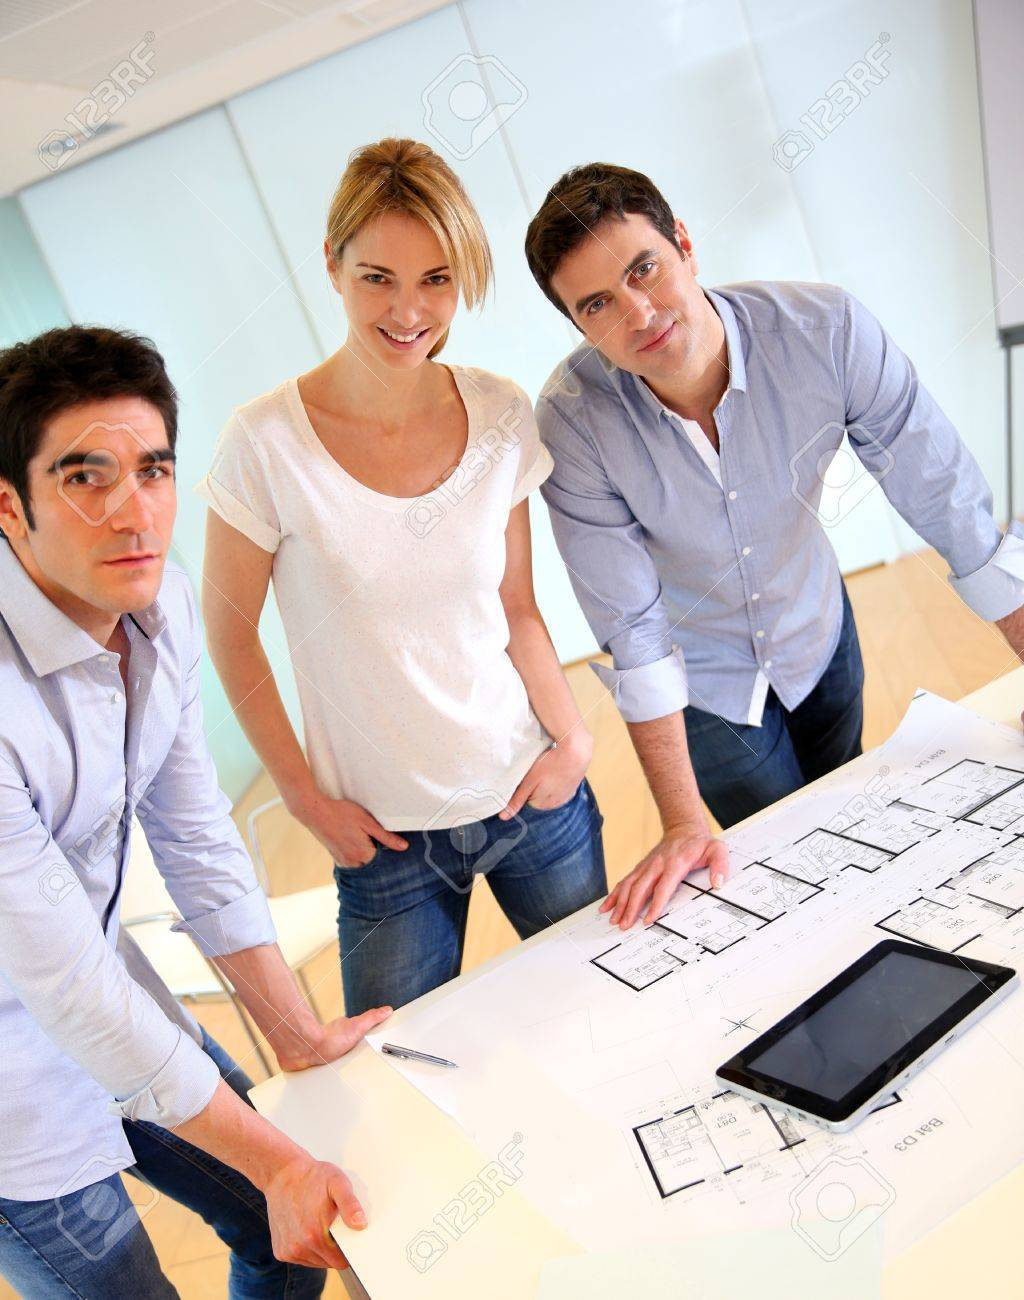 Group of architects working in office Stock Photo - 17826079